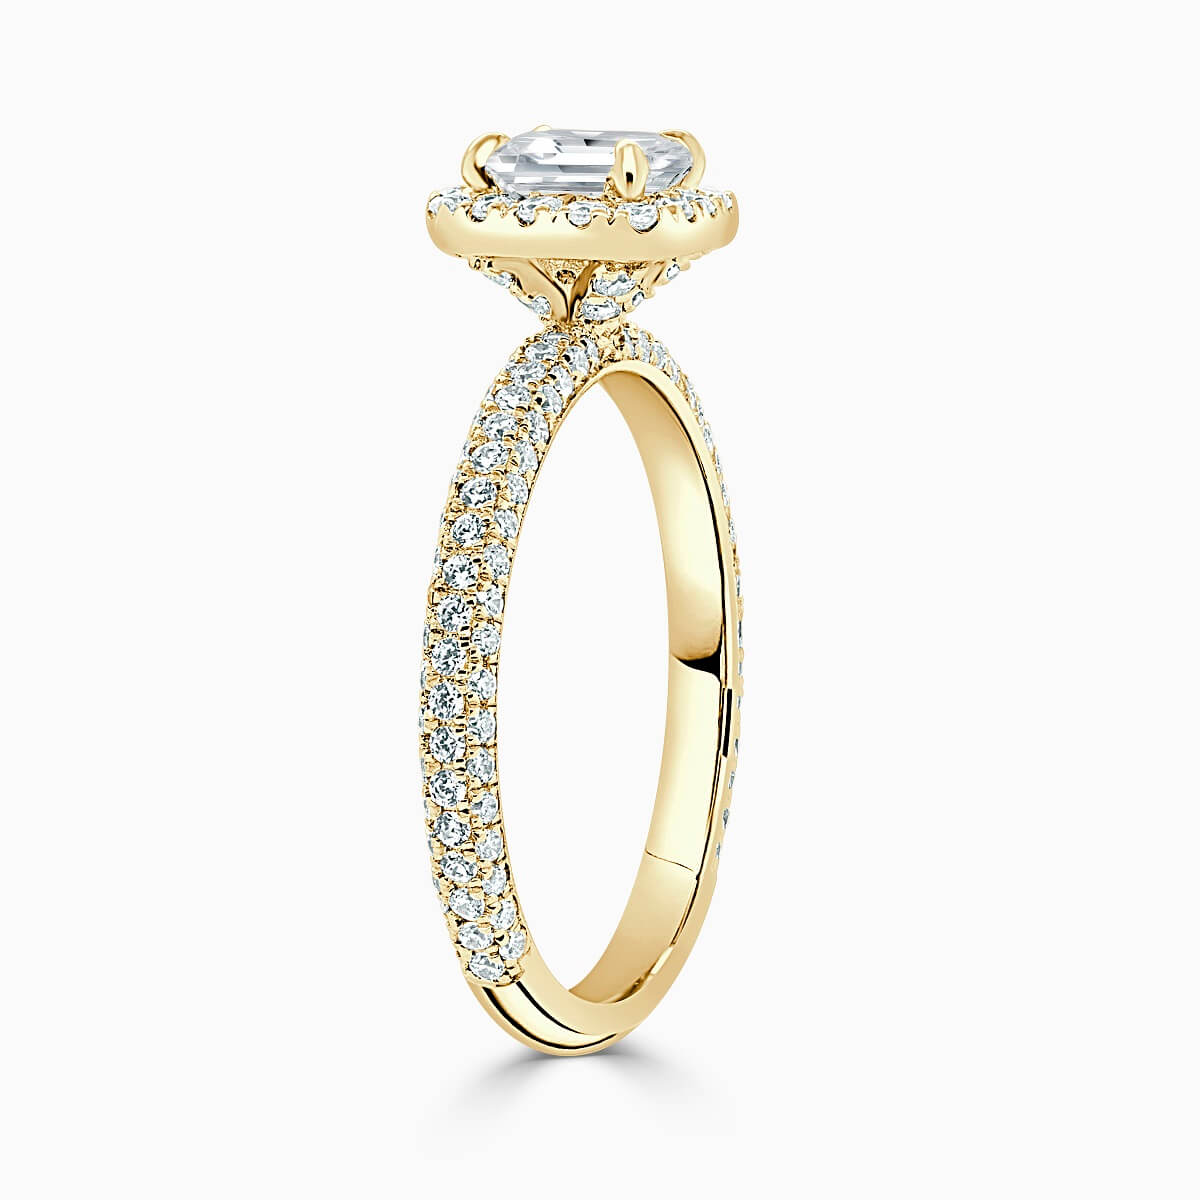 18ct Yellow Gold Princess Cut Halo With Micro Pave Engagement Ring